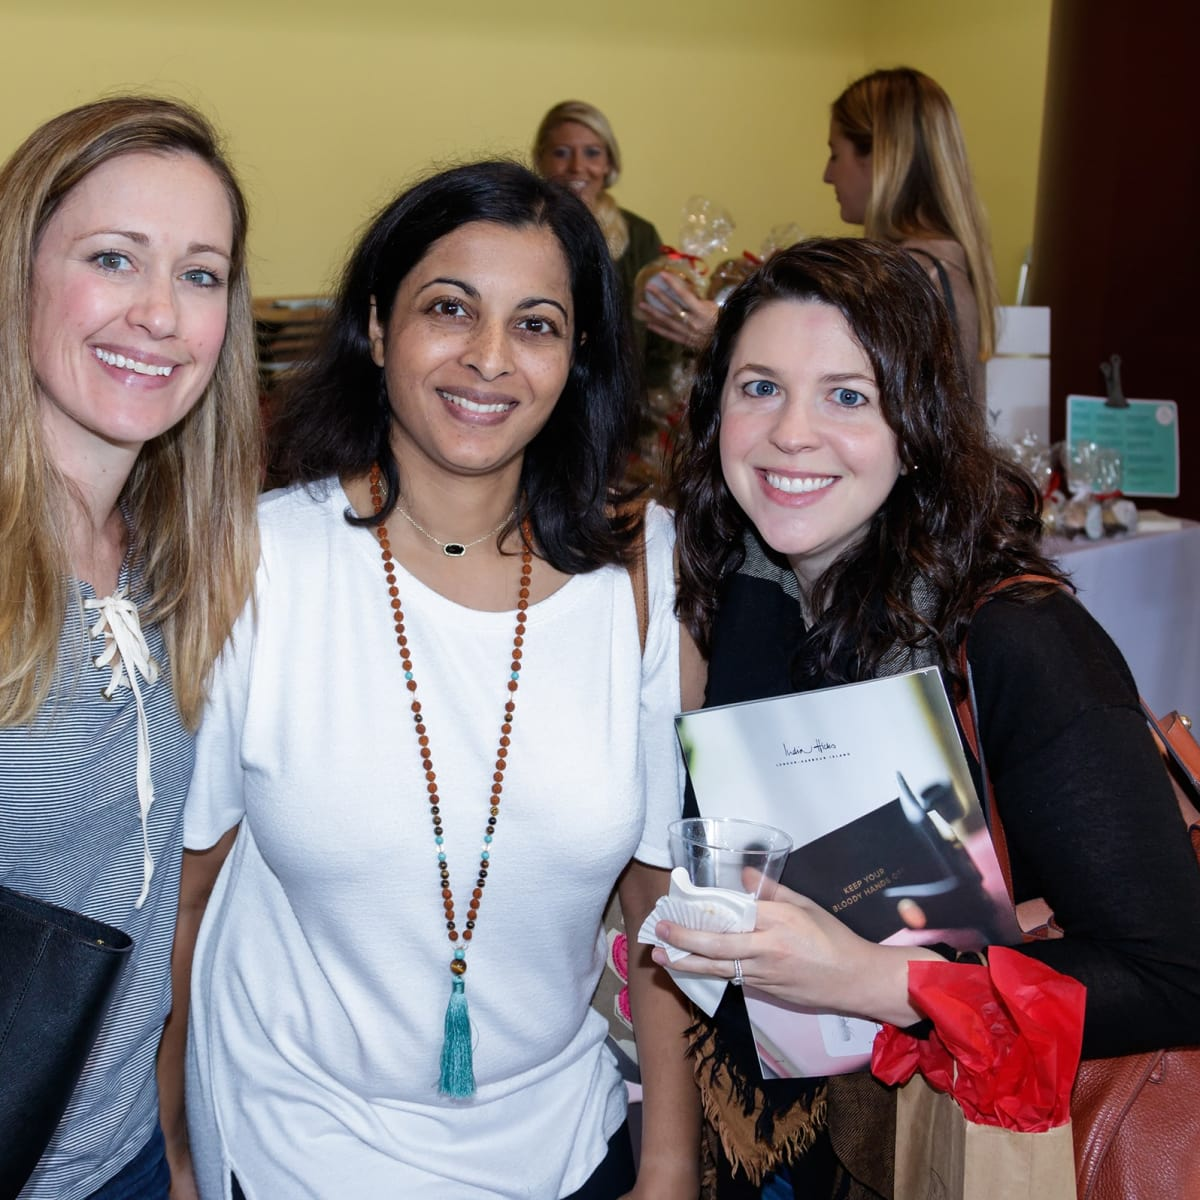 Sarah Raggio, Preeya Gemd, Meghan Demicco, 2017 CultureMap Dallas Holiday Pop-up